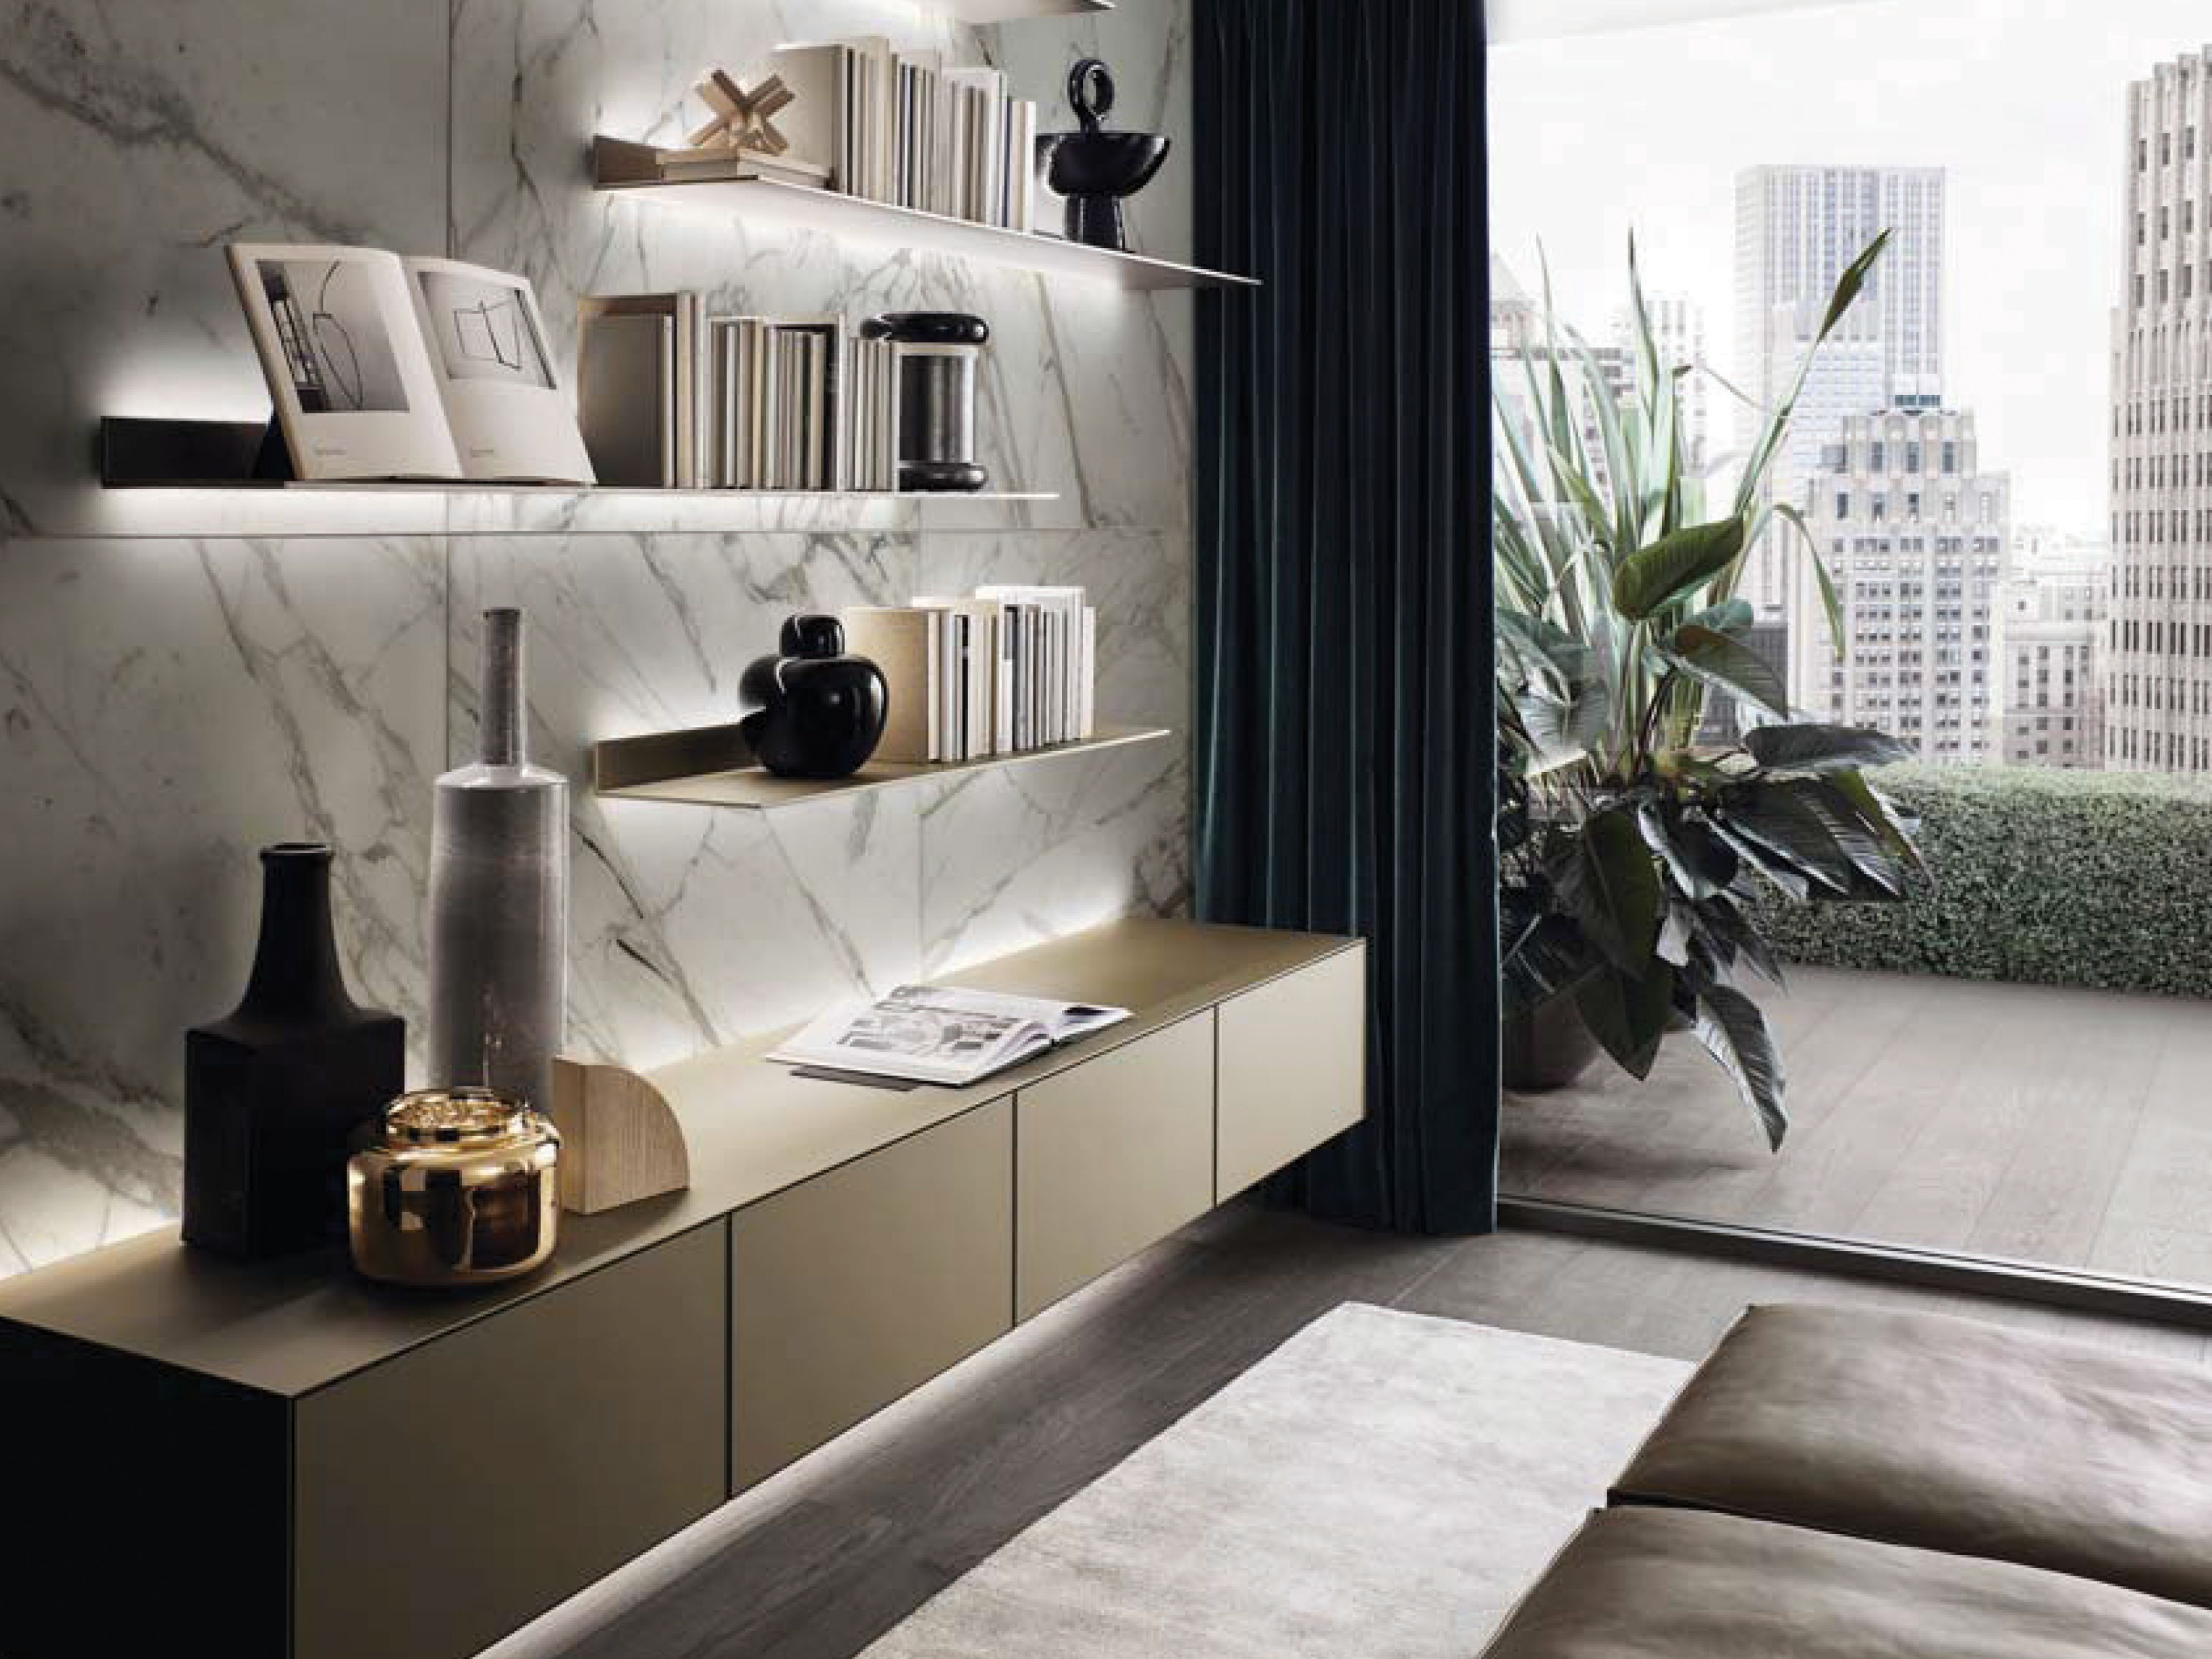 Rimadesio Eos Illuminated Shelves And Self Floating Cabinet  # Fabricante Muebles Eos